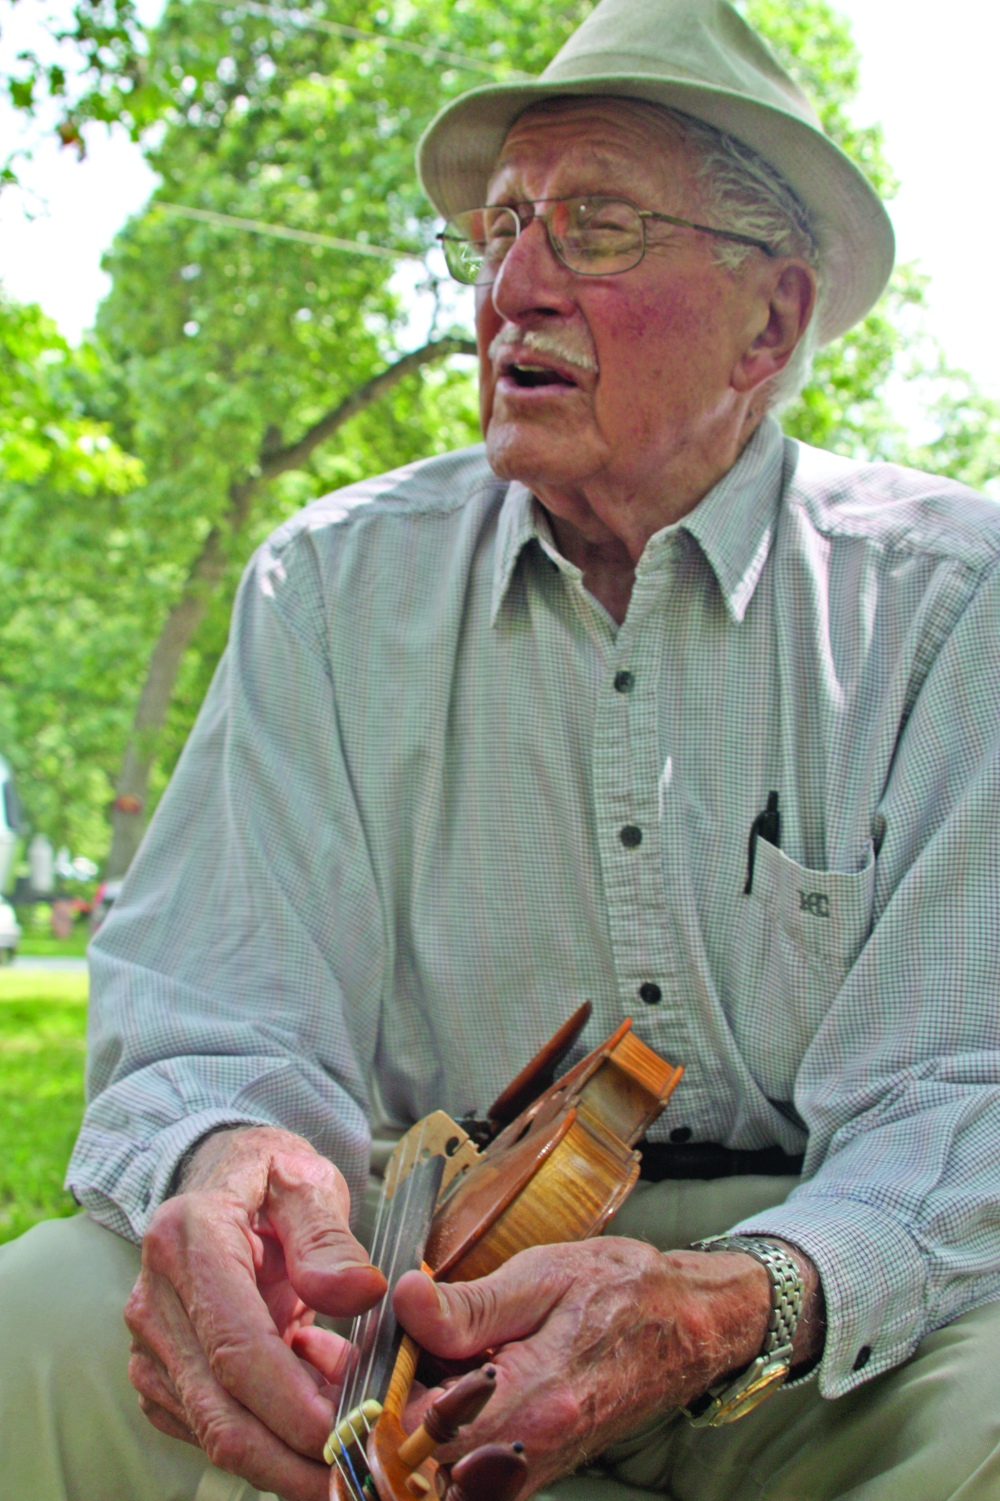 "Walter Jones, 90, of Hamilton holds out a fiddle he made during the Spring Lake Bluegrass Festival and Jam on Saturday, July 19, 2014, in Macomb, Ill. Jones jammed with a small group of other senior-aged musicians away from the festival's main performances and secluded under a tree canopy; however, he was the only one two bring an instrument he'd crafted himself over an expansive, decades-long career. ""I've repaired violins,"" he said. ""I've even repaired one in Switzerland."""